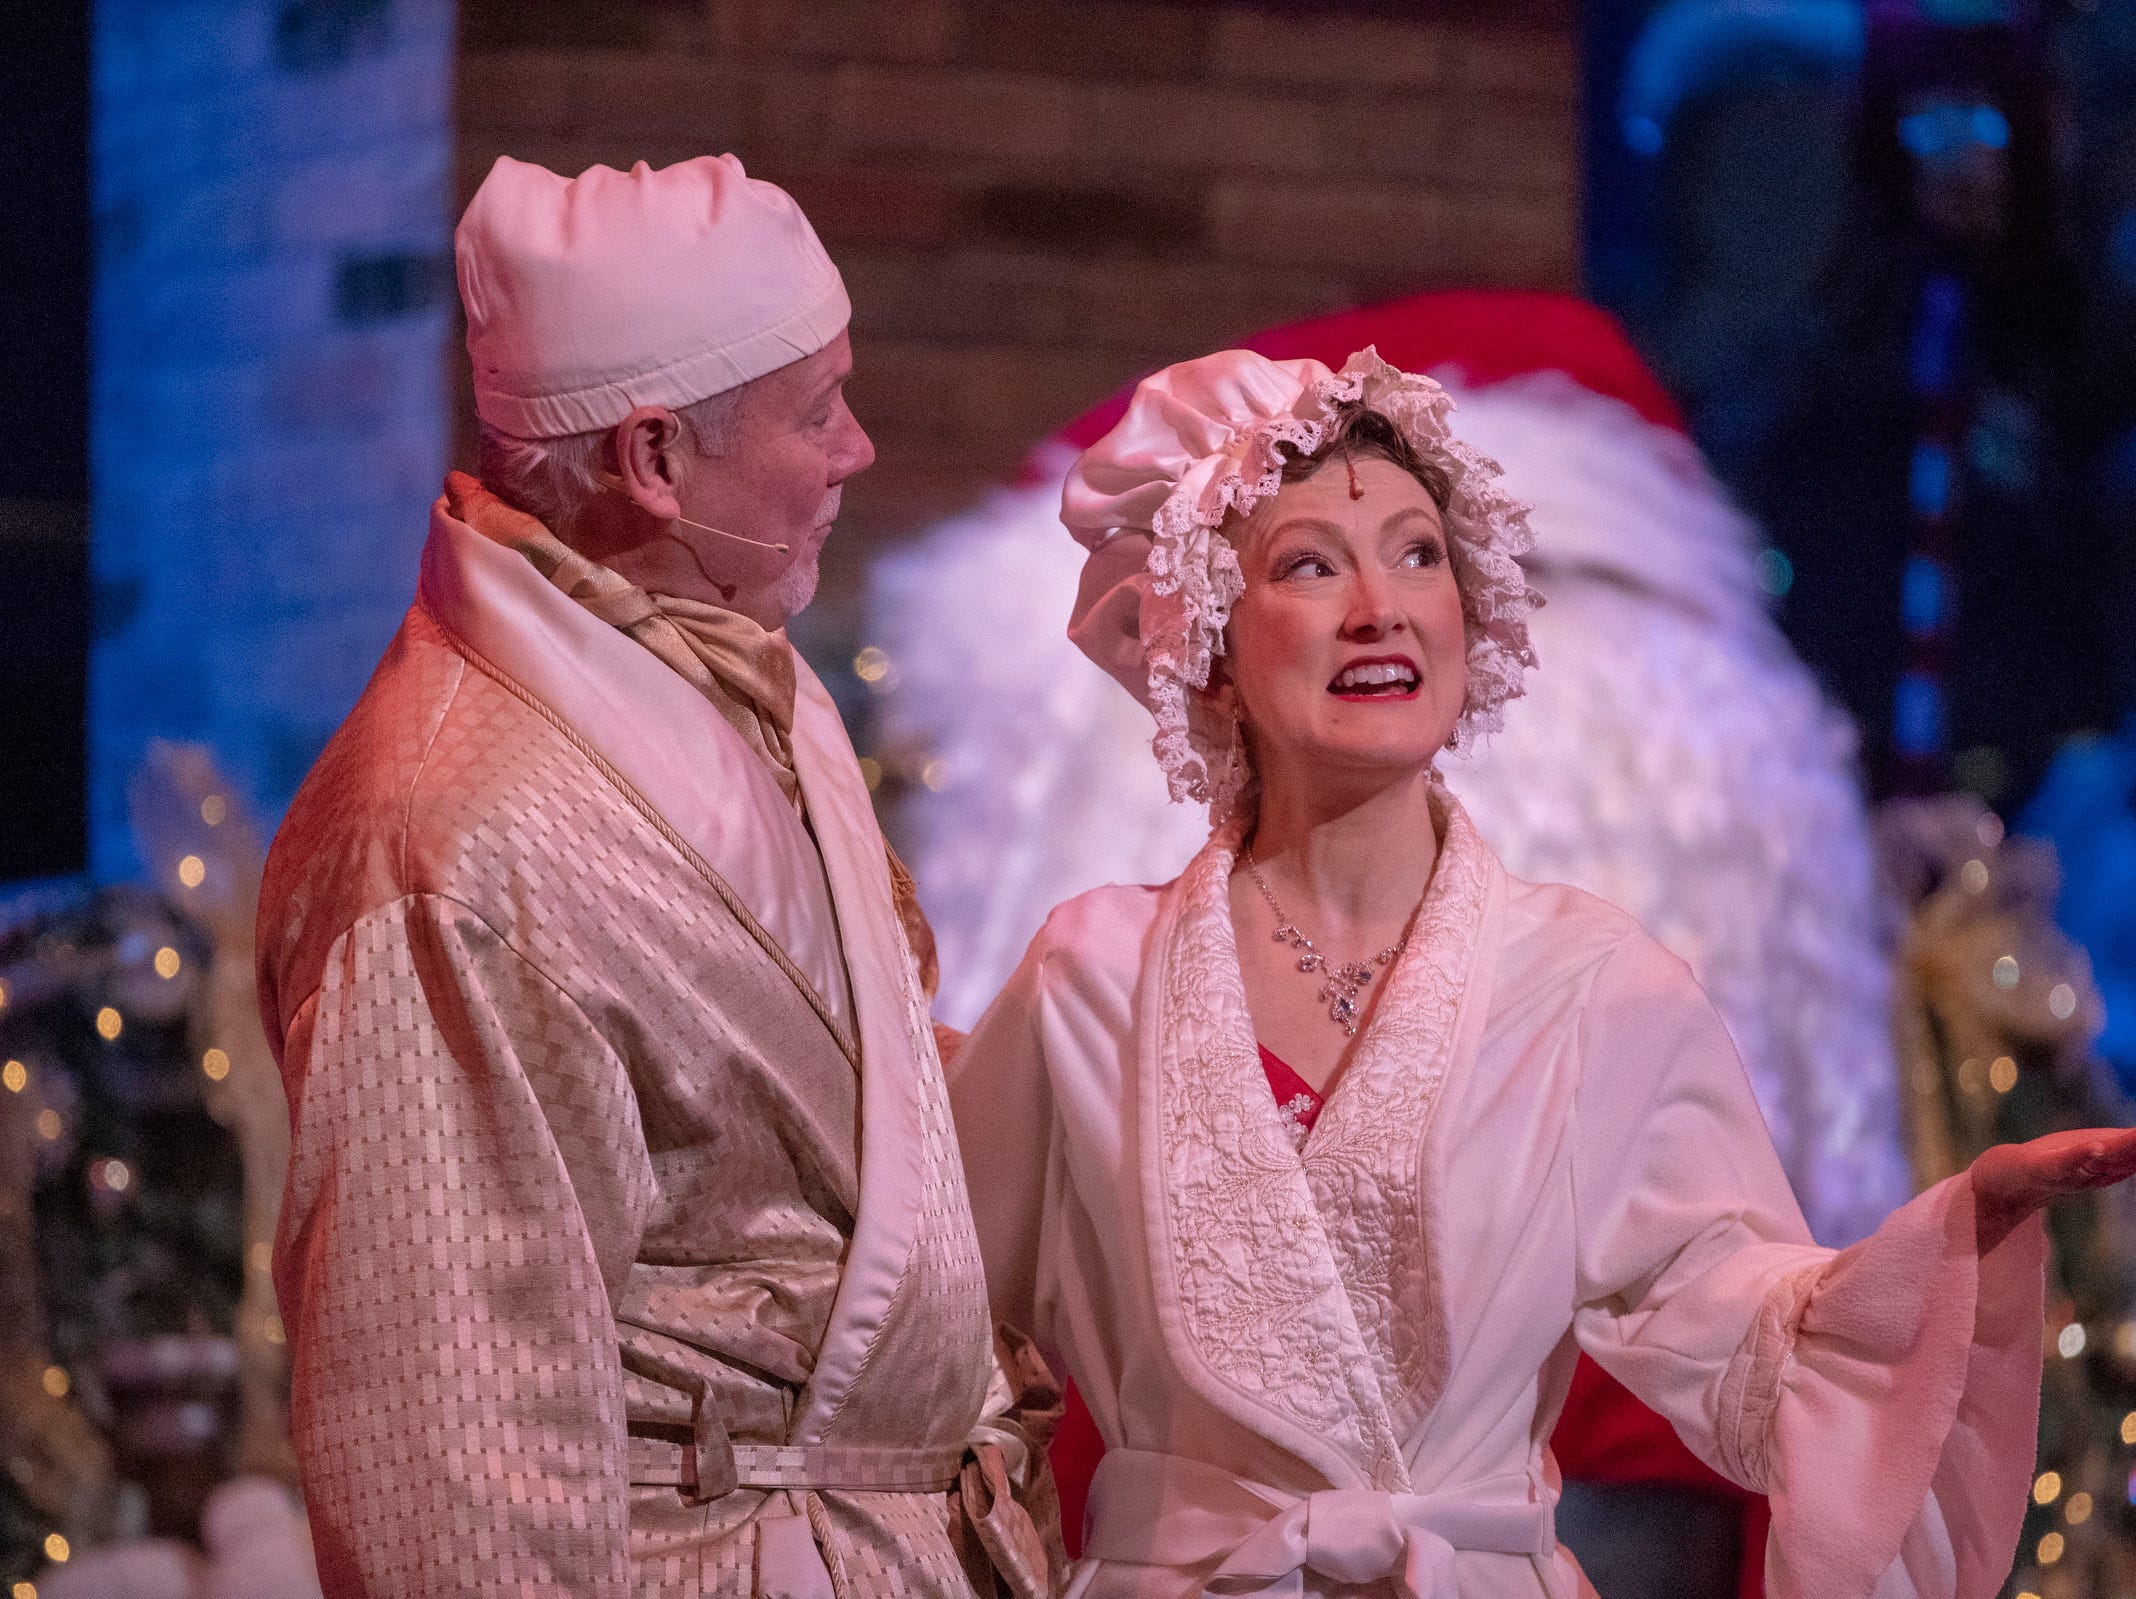 A musical number at Yuletide Celebration, showcasing the Indianapolis Symphony Orchestra, at Hilbert Circle Theater, Indianapolis, Sunday. Dec. 23, 2018. The extravaganza features dancing, holiday songs, and skits.